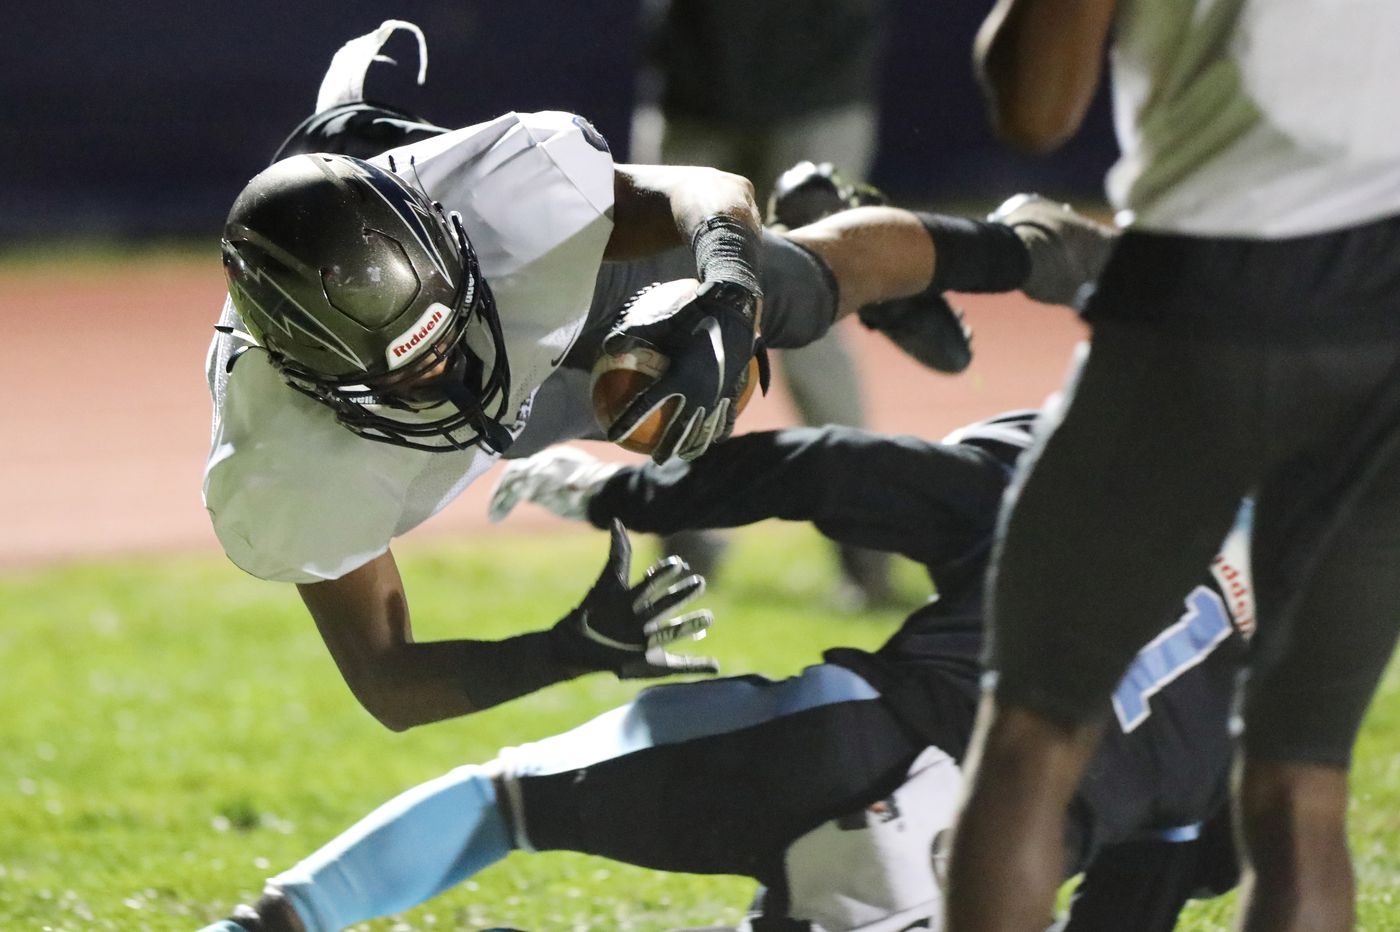 Hamin Anderson's interception seals win for Highland over Timber Creek